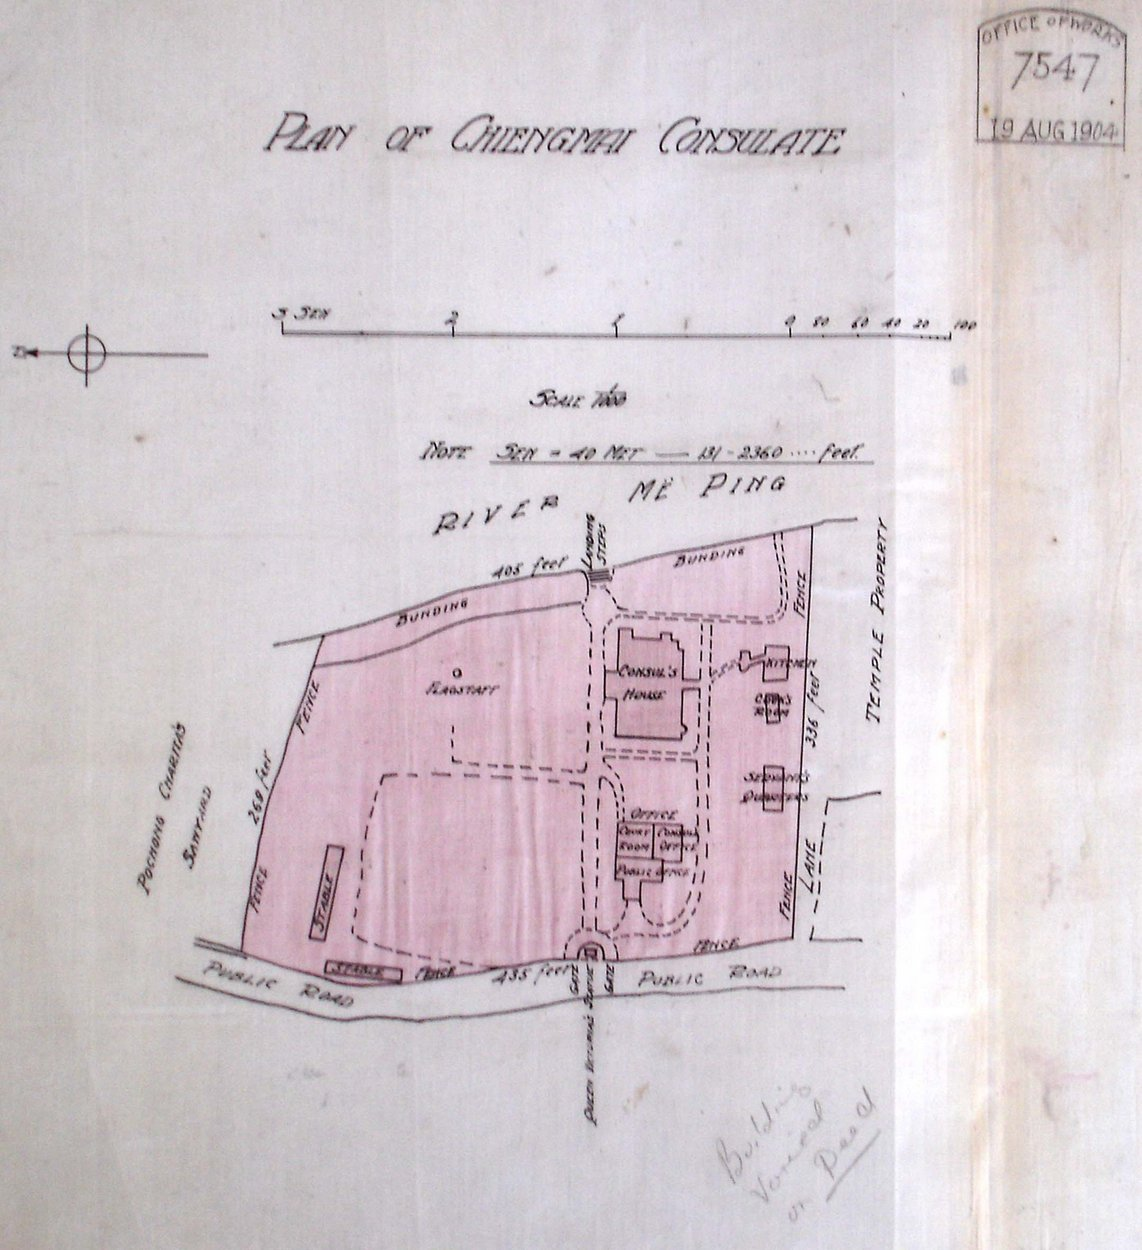 plan of the design of the Chiengmai British Consulate